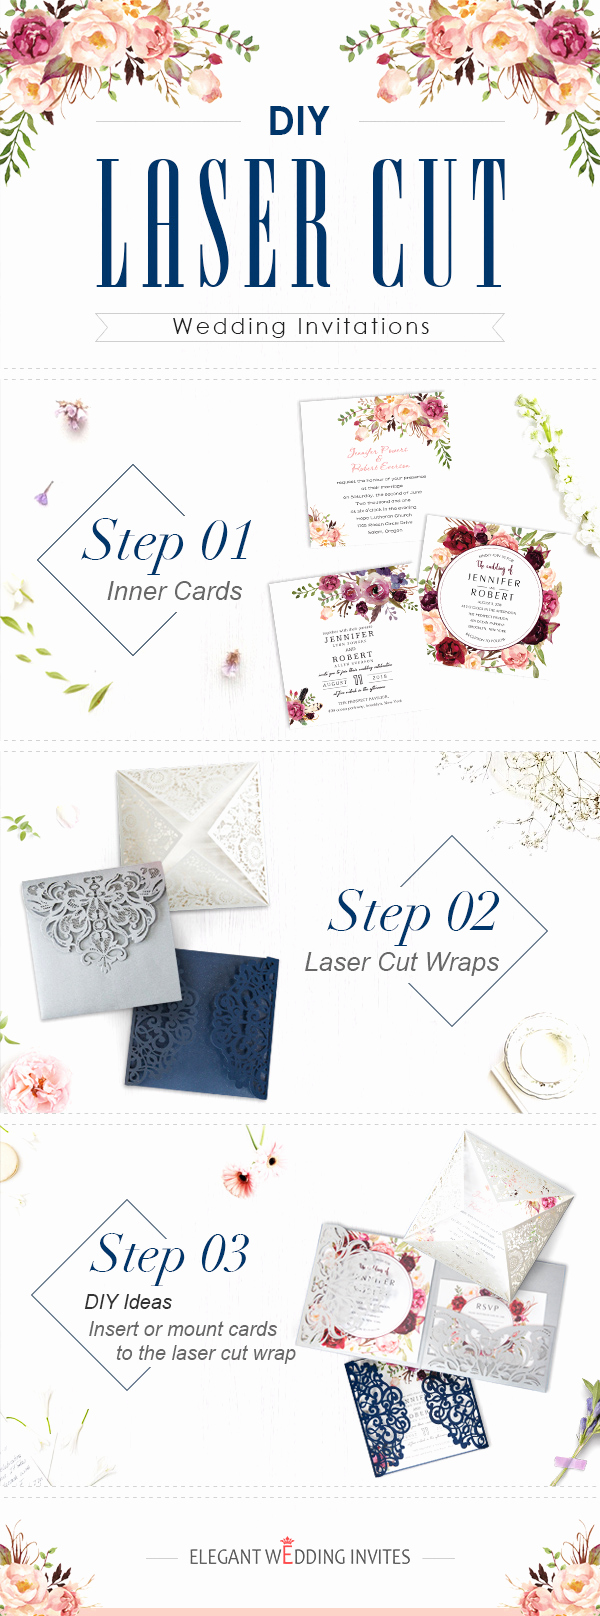 Diy Wedding Invitation Idea Awesome Diy Wedding Ideas – Elegantweddinginvites Blog